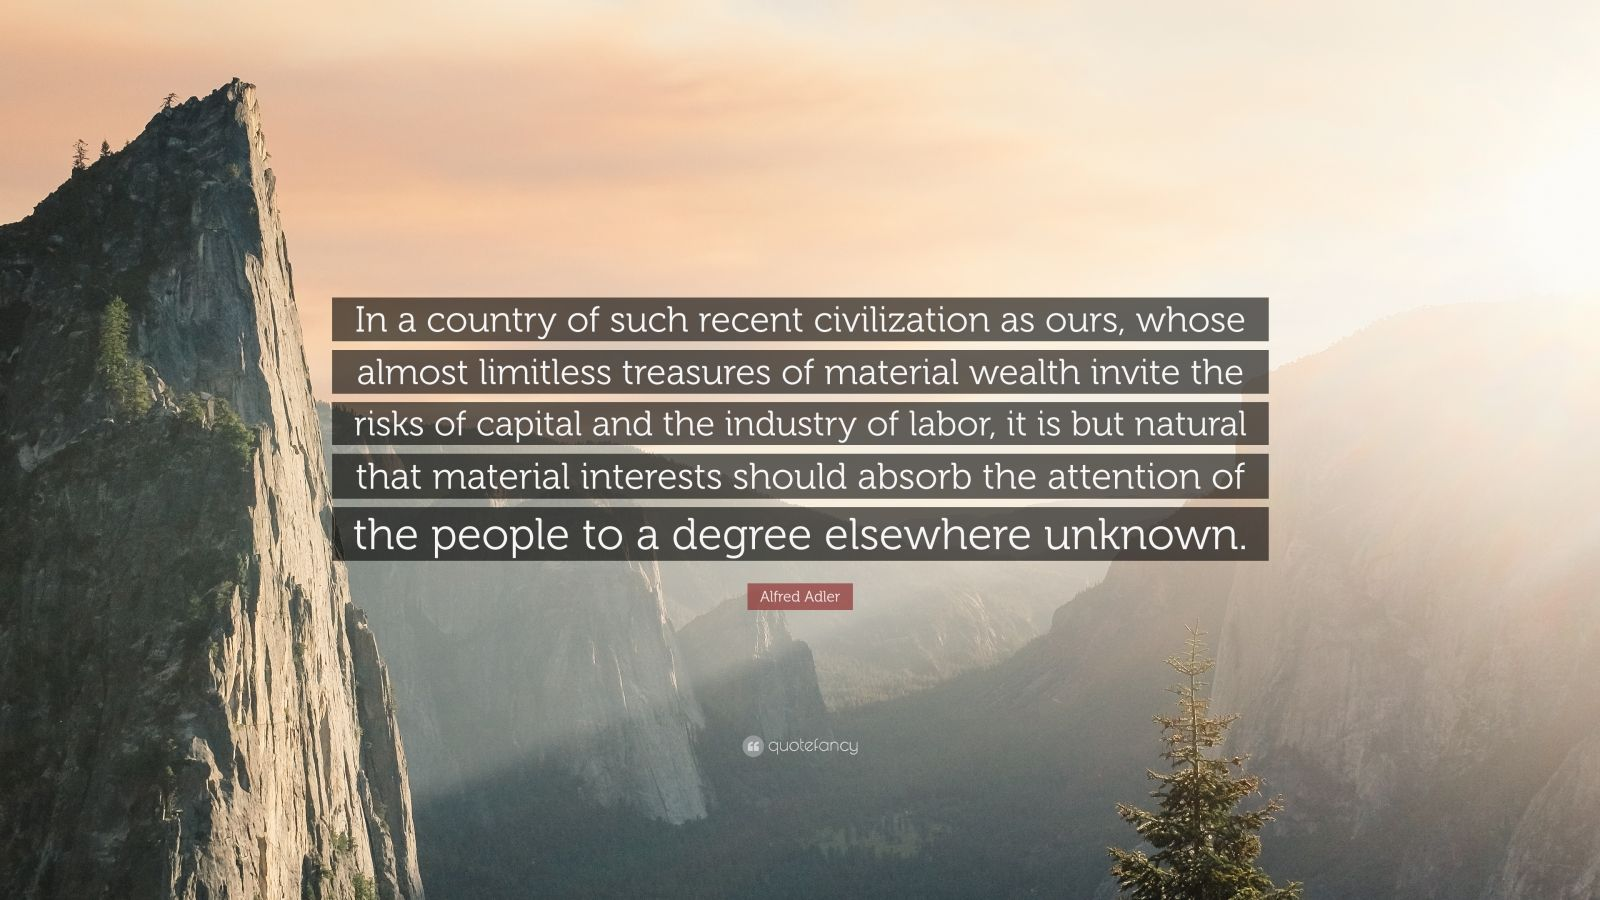 """Alfred Adler Quote: """"In a country of such recent civilization as ours, whose almost limitless treasures of material wealth invite the risks of capital and the industry of labor, it is but natural that material interests should absorb the attention of the people to a degree elsewhere unknown."""""""